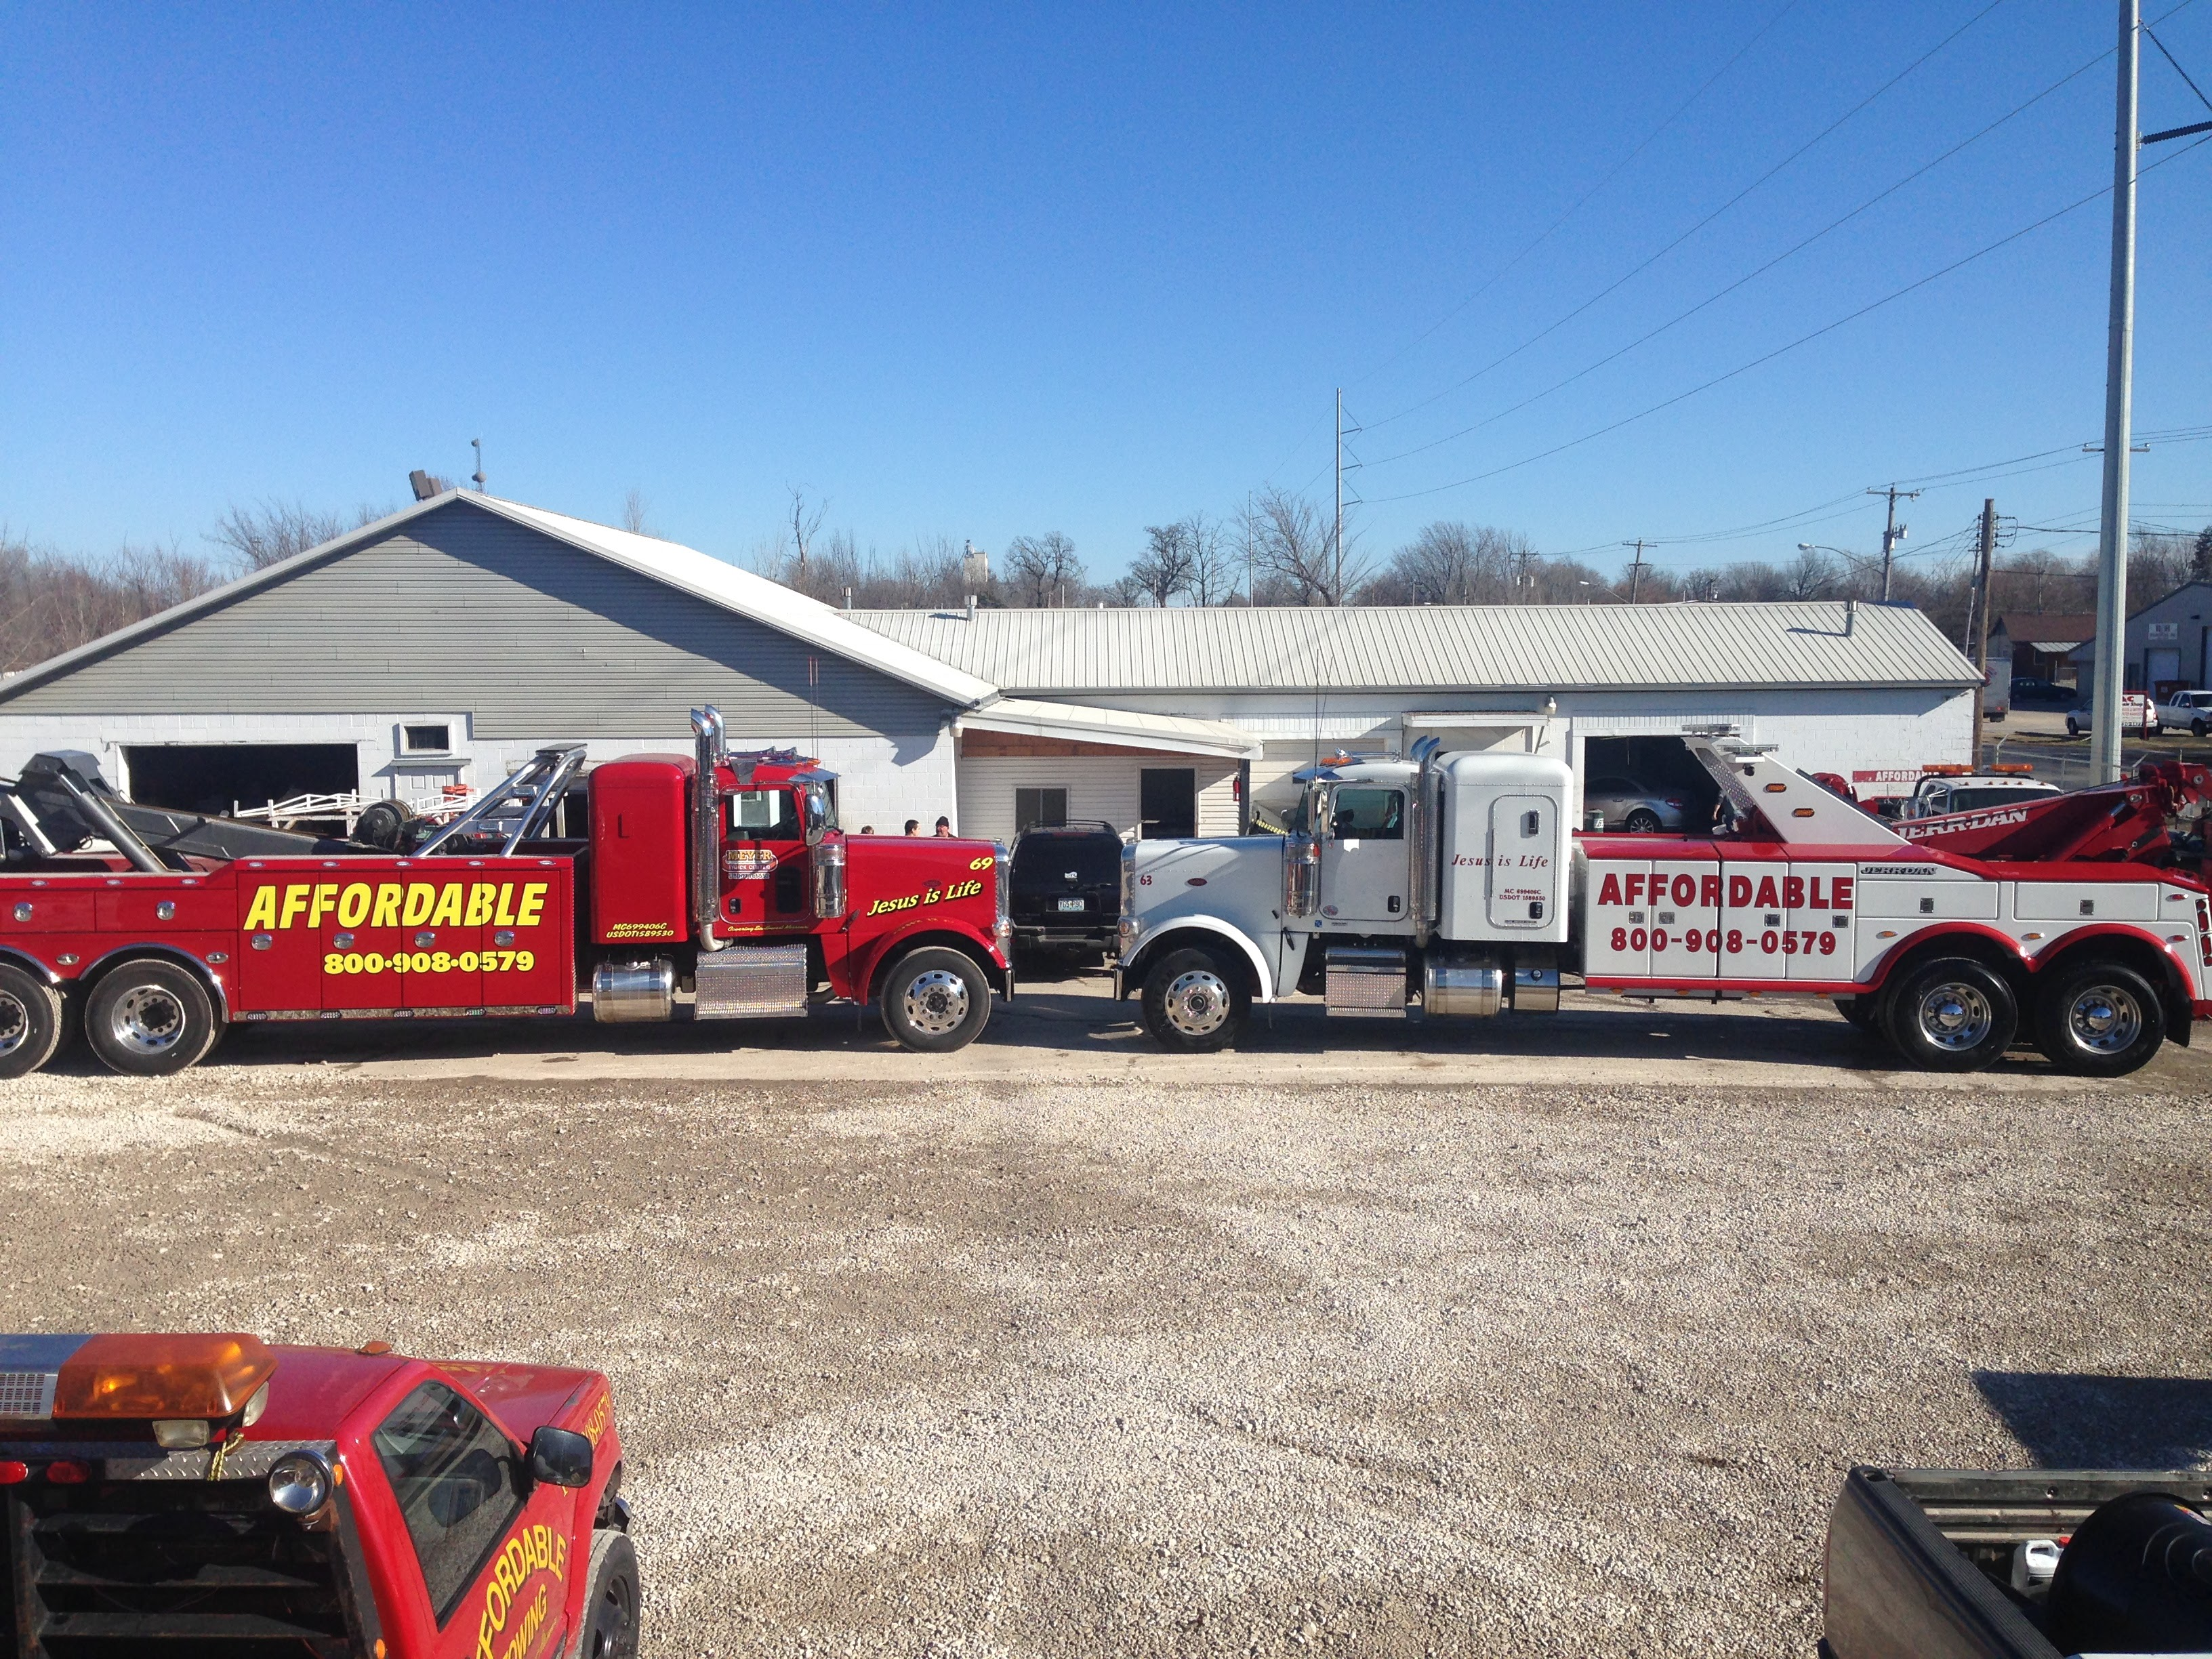 Affordable Towing image 8